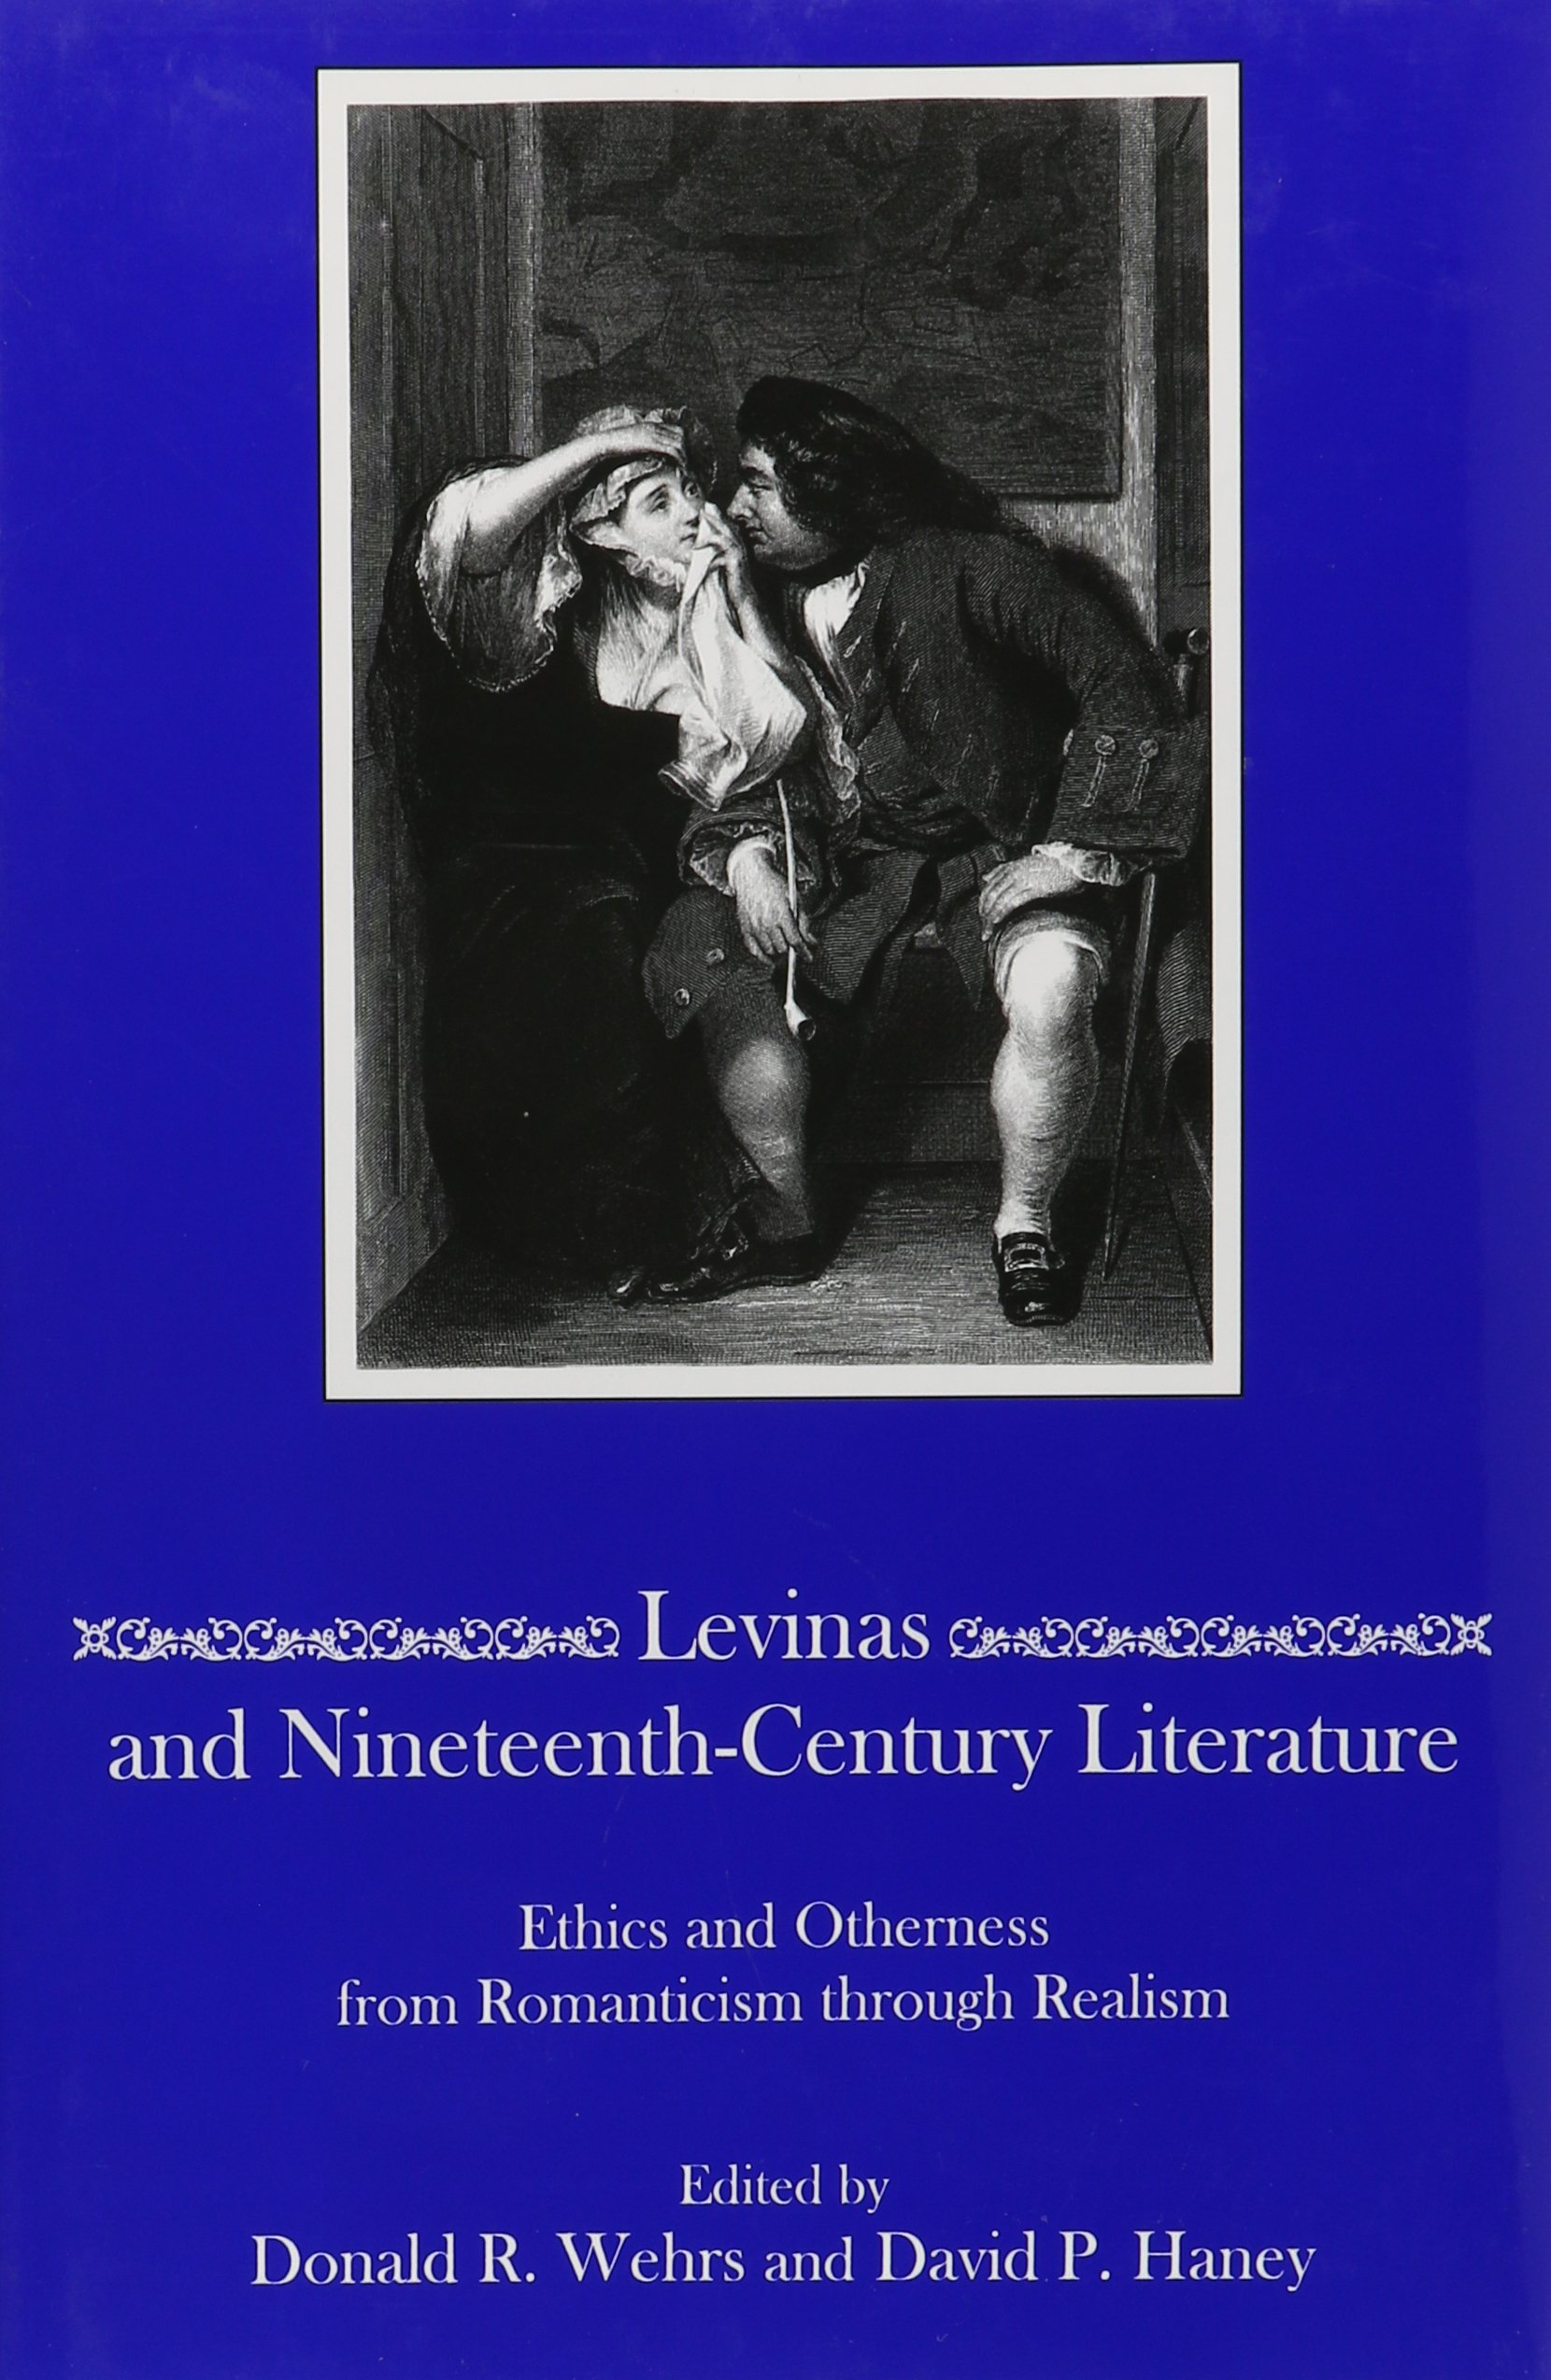 Download Levinas and Nineteenth-Century Literature: Ethics and Otherness from Romanticism through Realism pdf